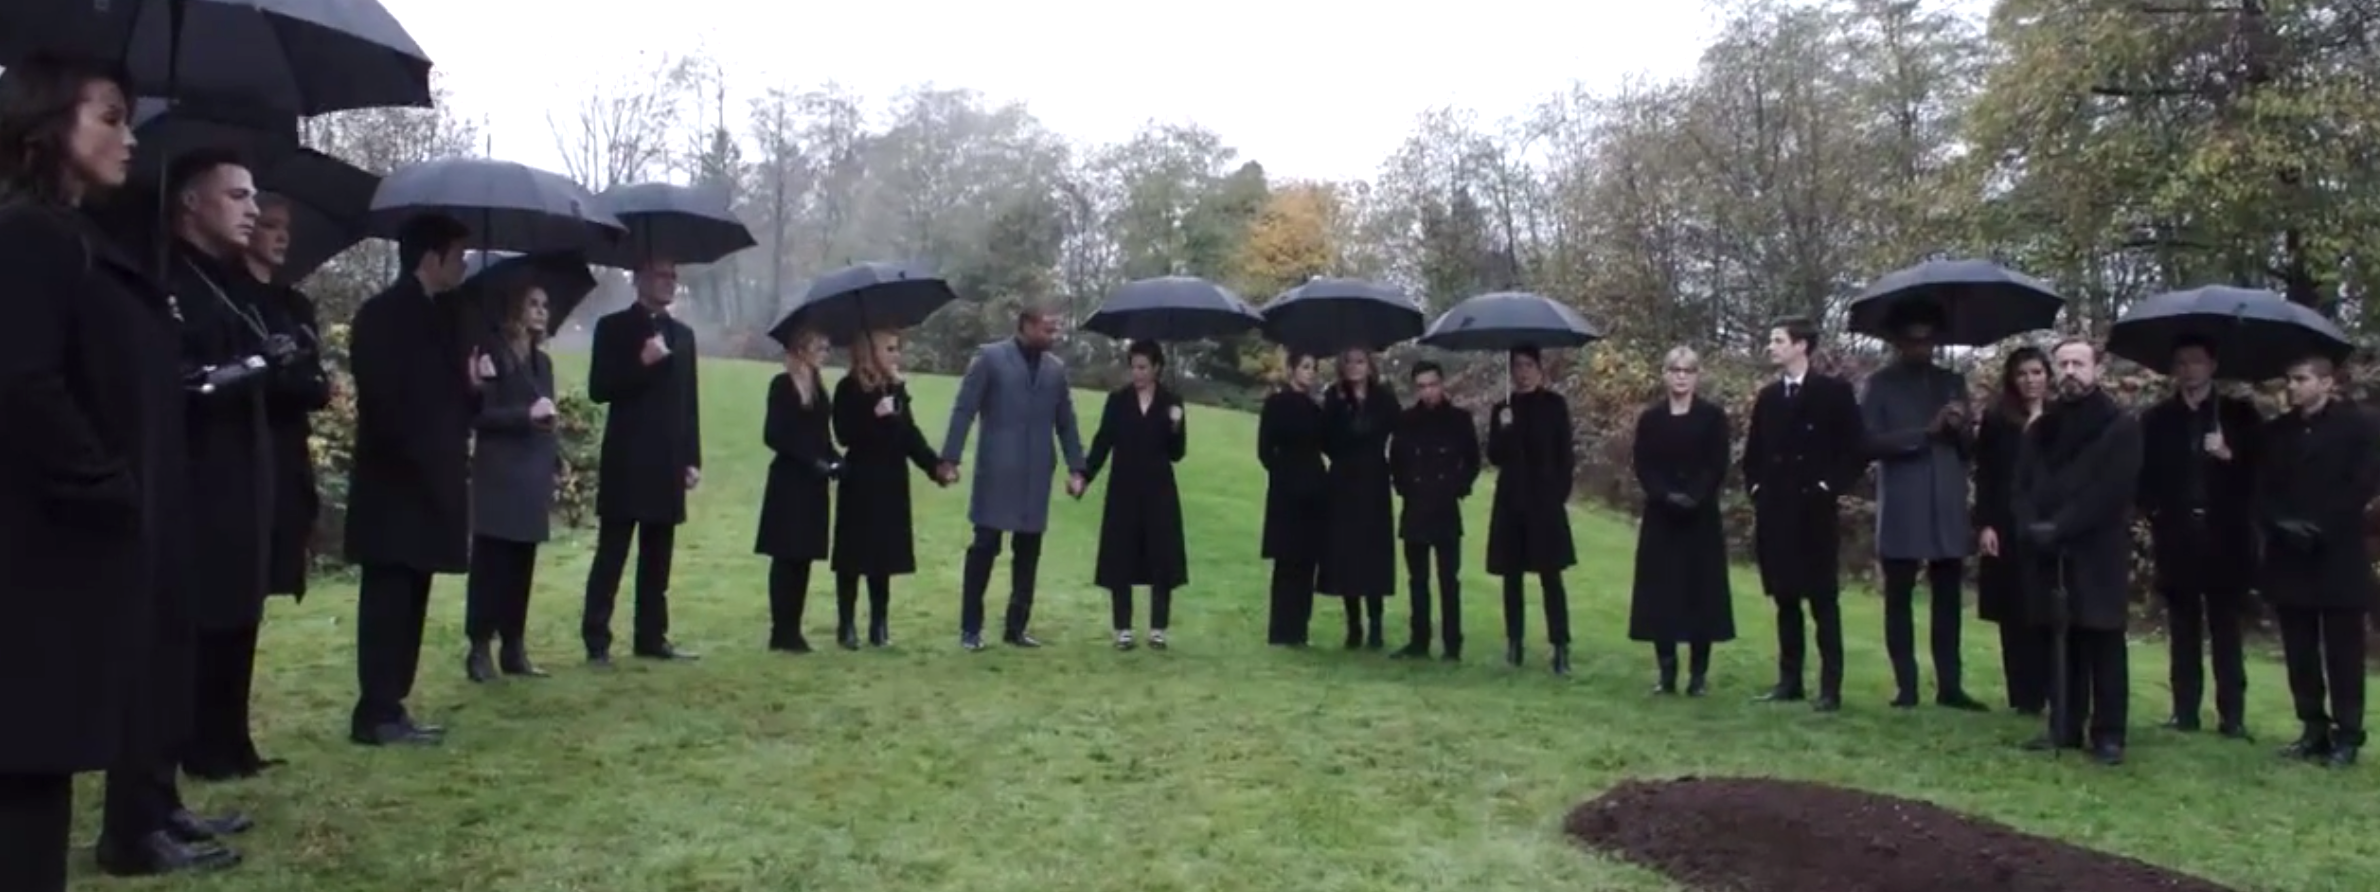 Arrow Series Finale Funeral